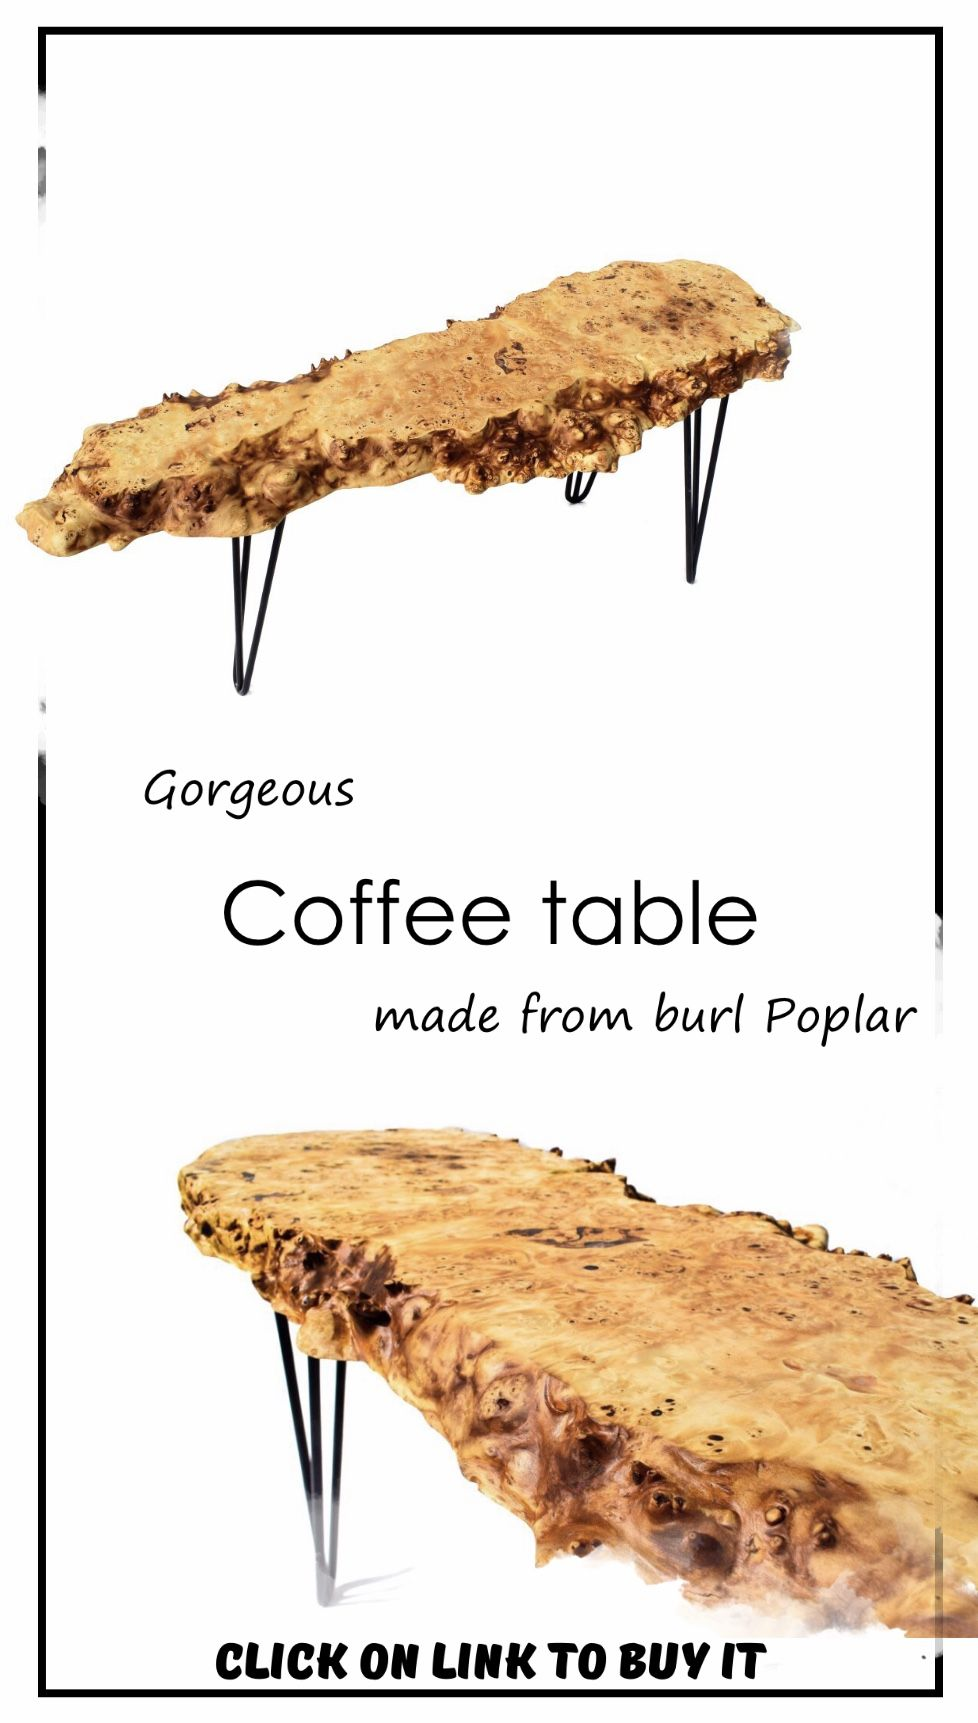 If you like it just click on link to buy it! #coffeetable #wood #woodentable #woodtable #woodentable #woodtable #woodtableplans #burl #burlpoplar #burlwoodcrafts #burlwooddiy #woodburl #littletable #farmhousetable #rusticstyle #rustictable #cooltable #beautifultable #cutetable #dinnertable #woodendinnertable #wood #woodcrafts #woodenstuff #giftforchristmas #giftforparents